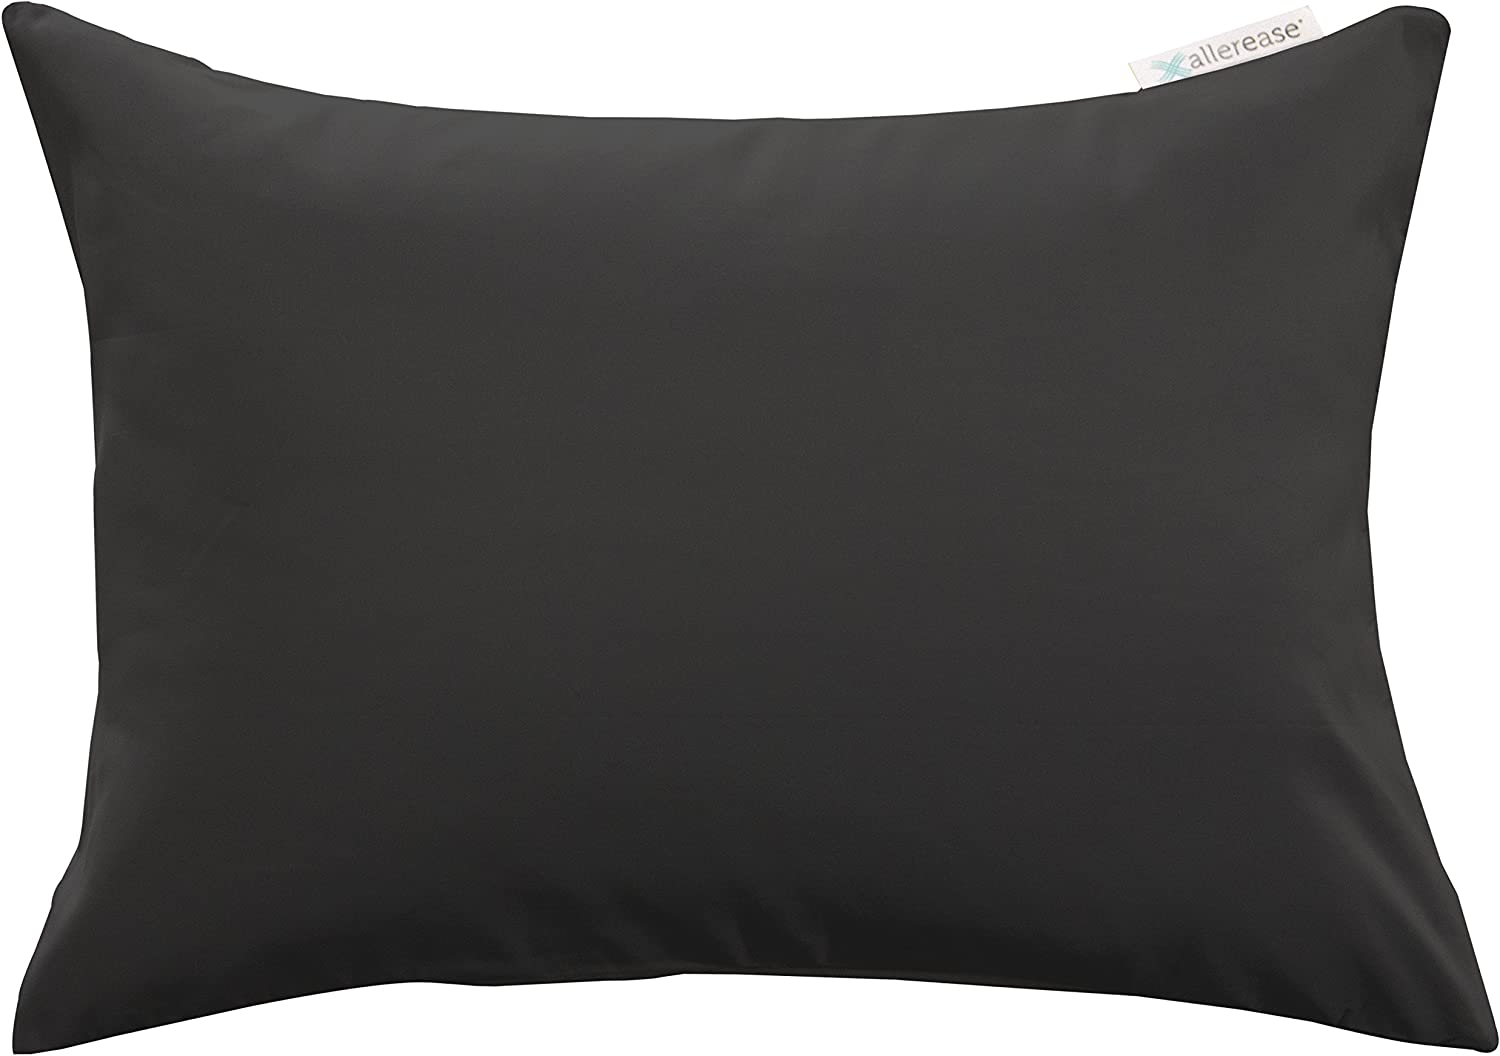 "AllerEase Allergy Protection Zippered Travel Pillow Protector, 14""x20"" (Black) – Soft Touch Microfiber Fabric - Block Dust Mites and Other Allergens from Travel/Toddler Pillow – Machine Washable"